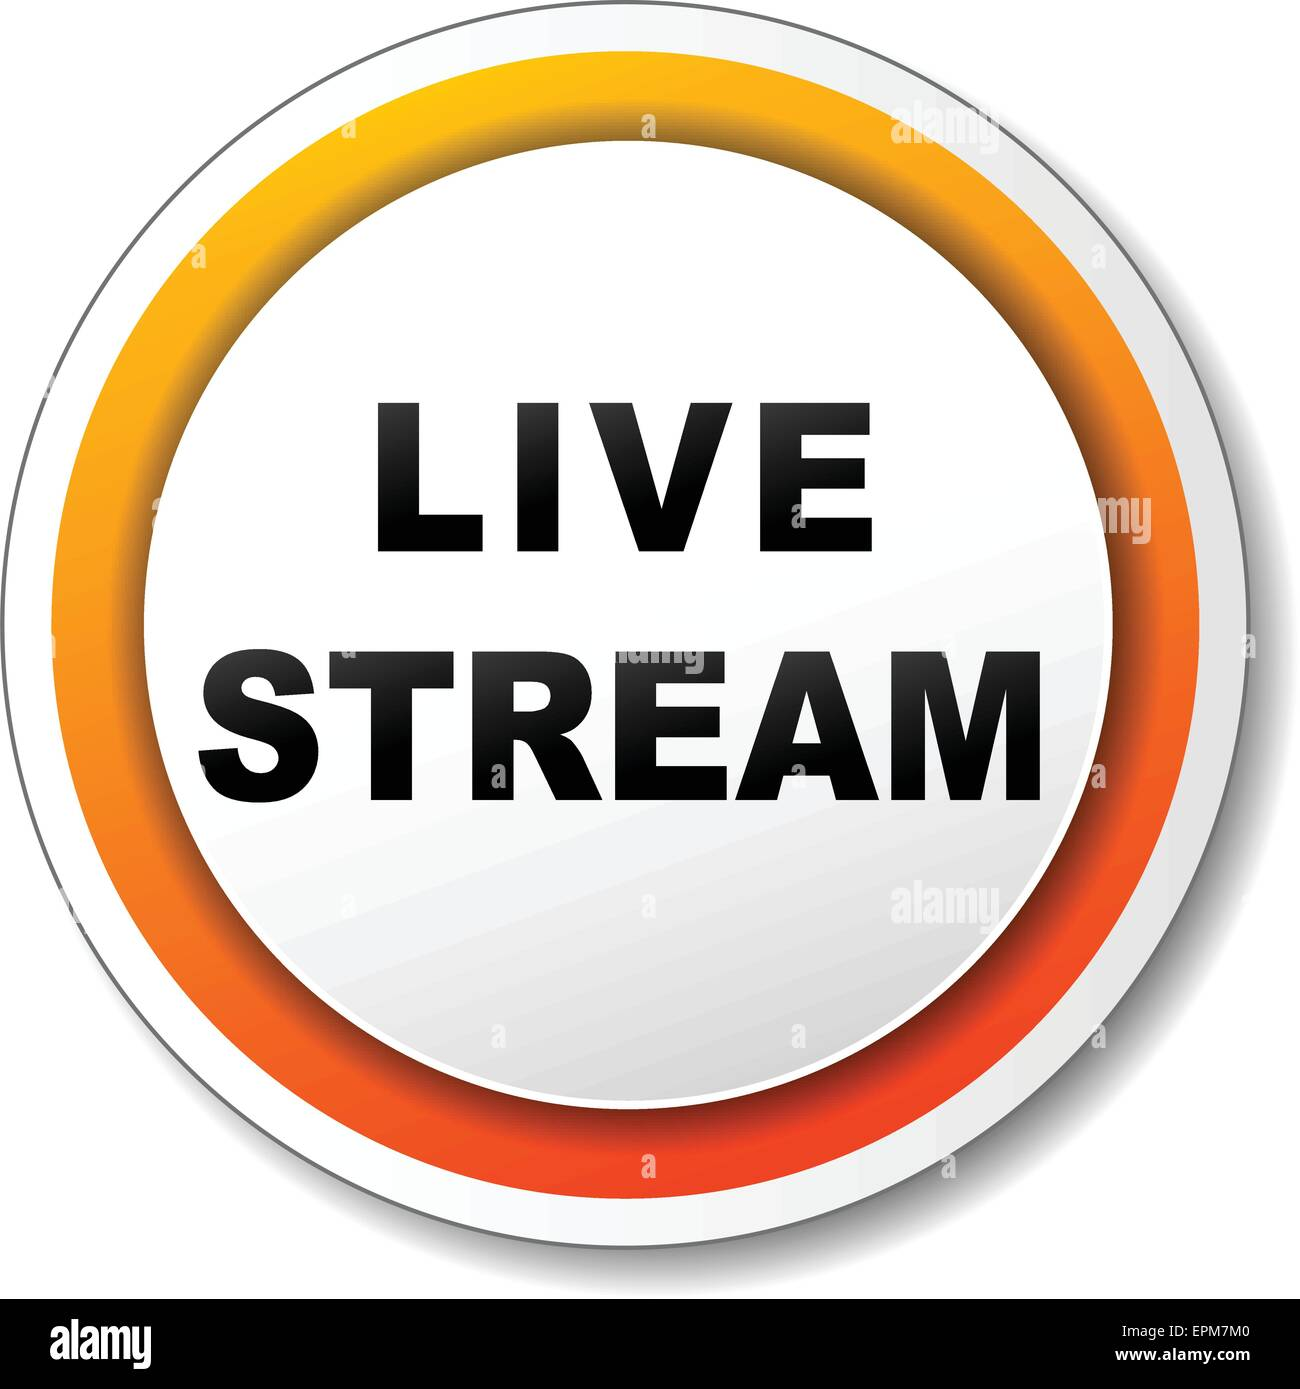 illustration of white and orange icon for live stream - Stock Image